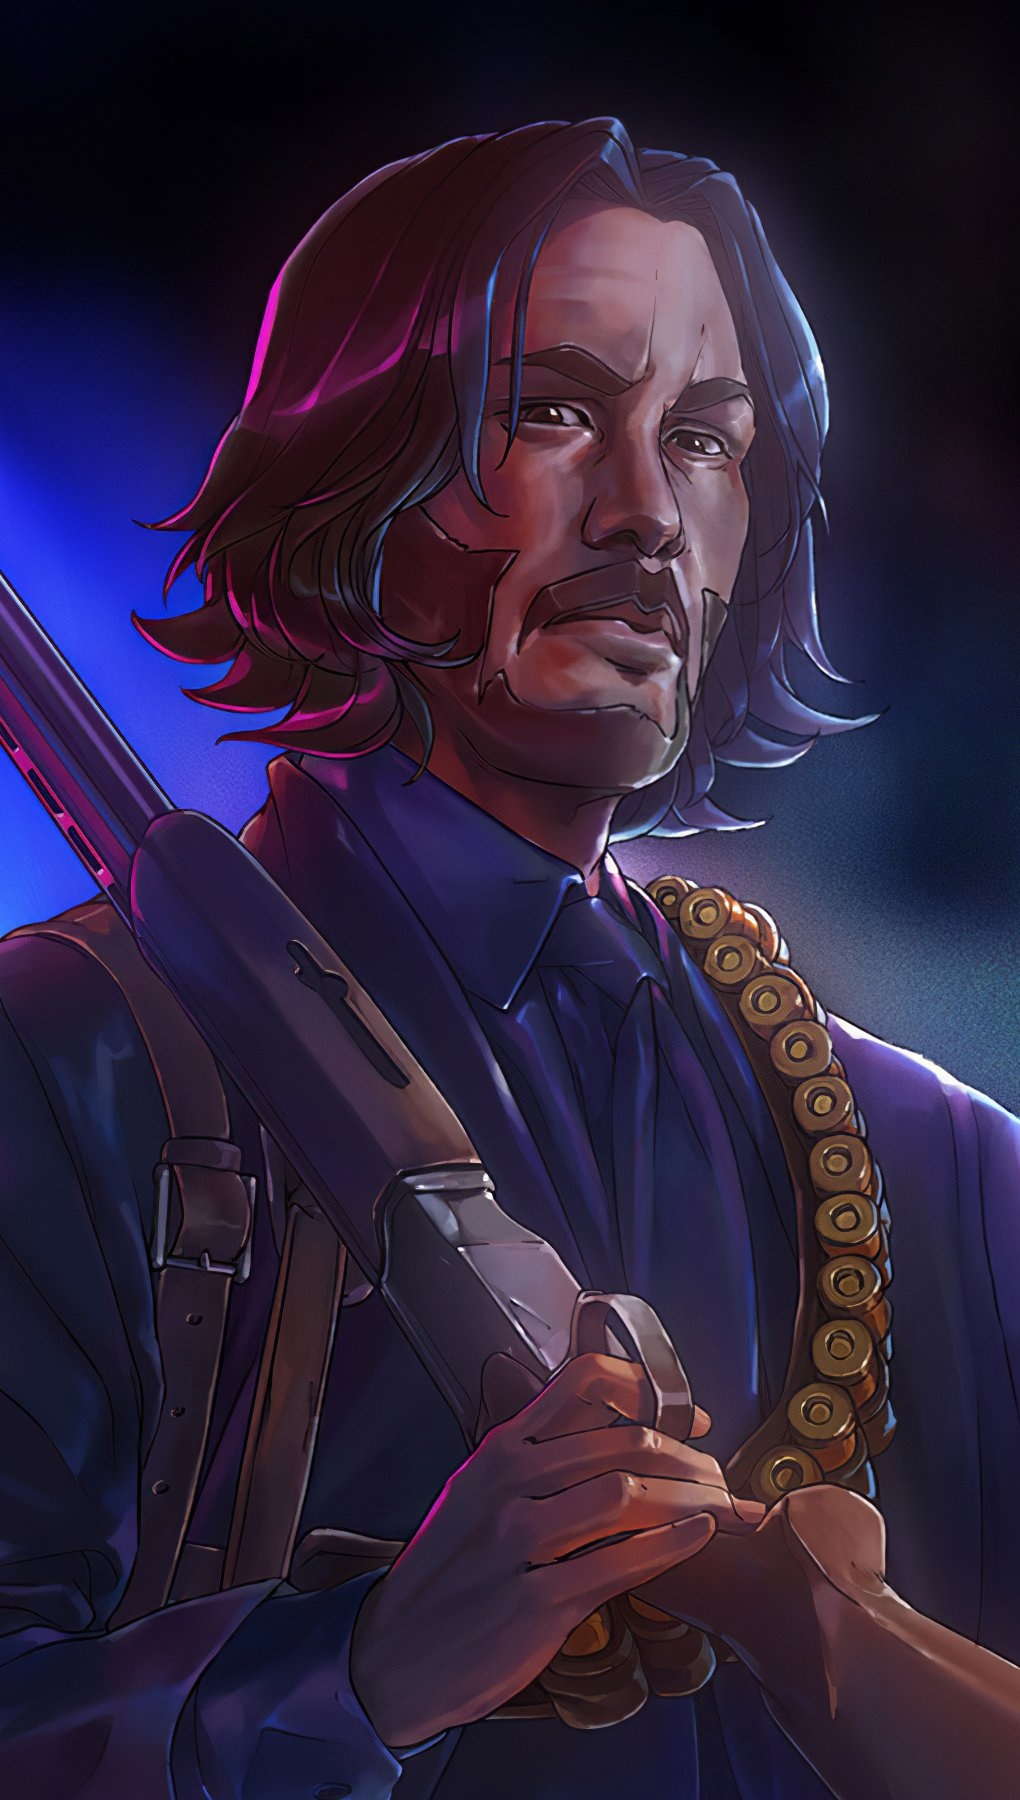 Wallpaper John Wick Illustration Vertical